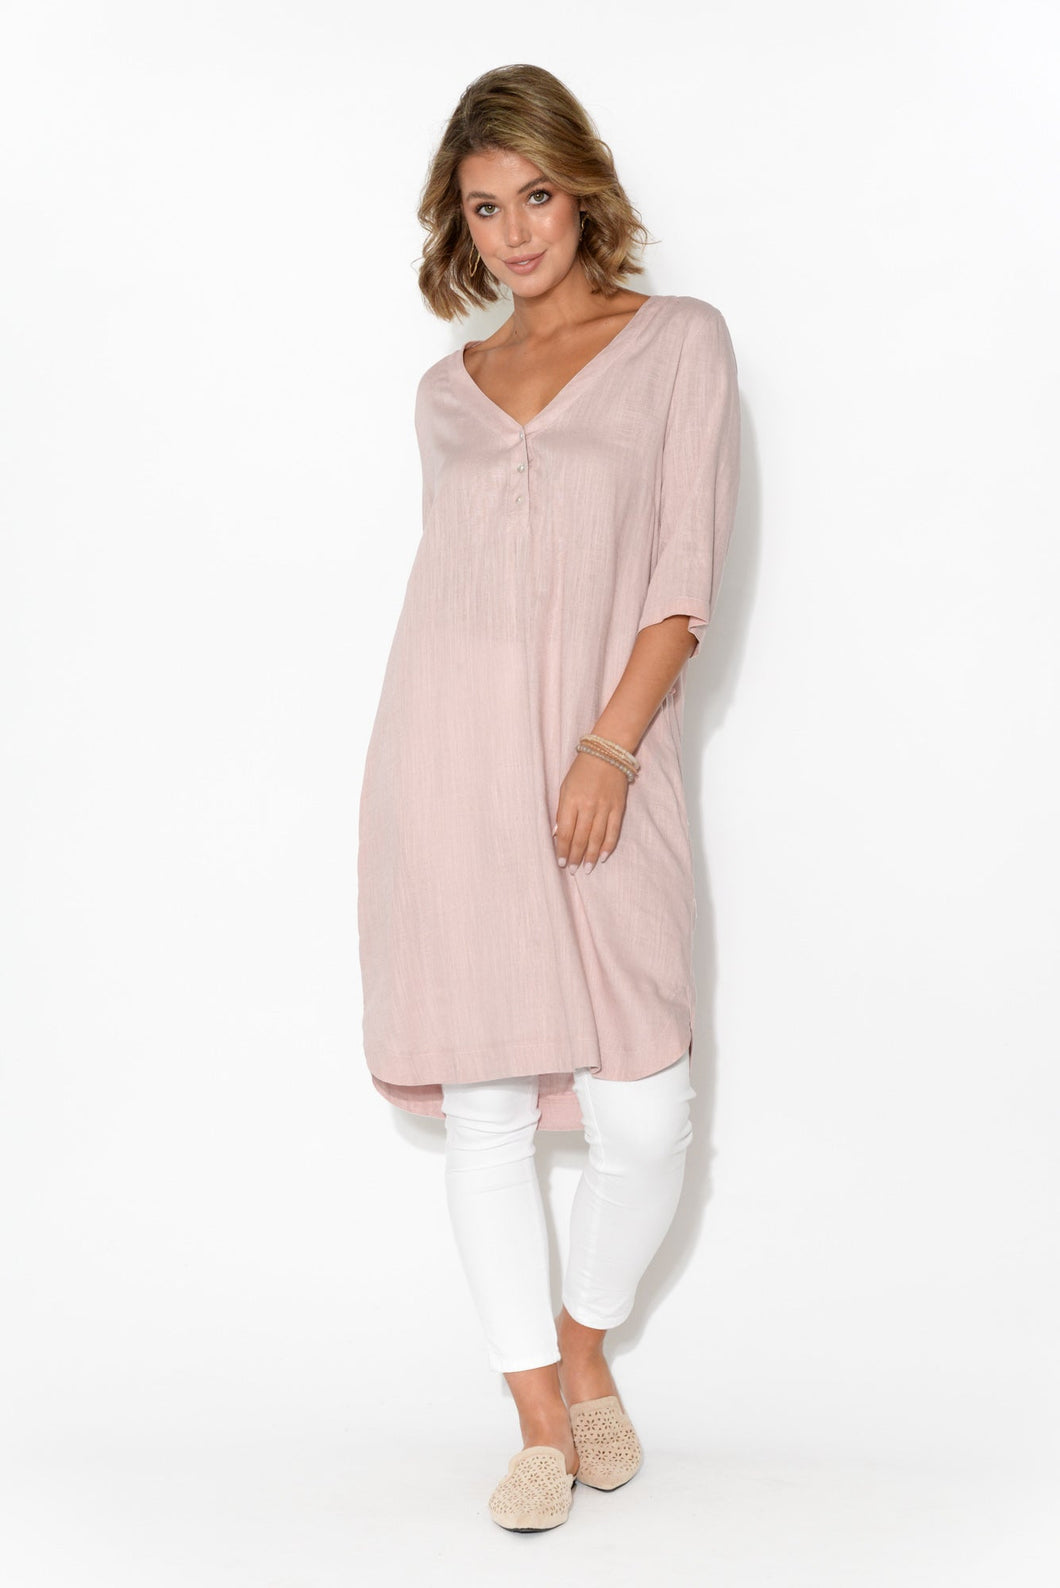 Myra Pink Cotton Linen Tunic Dress